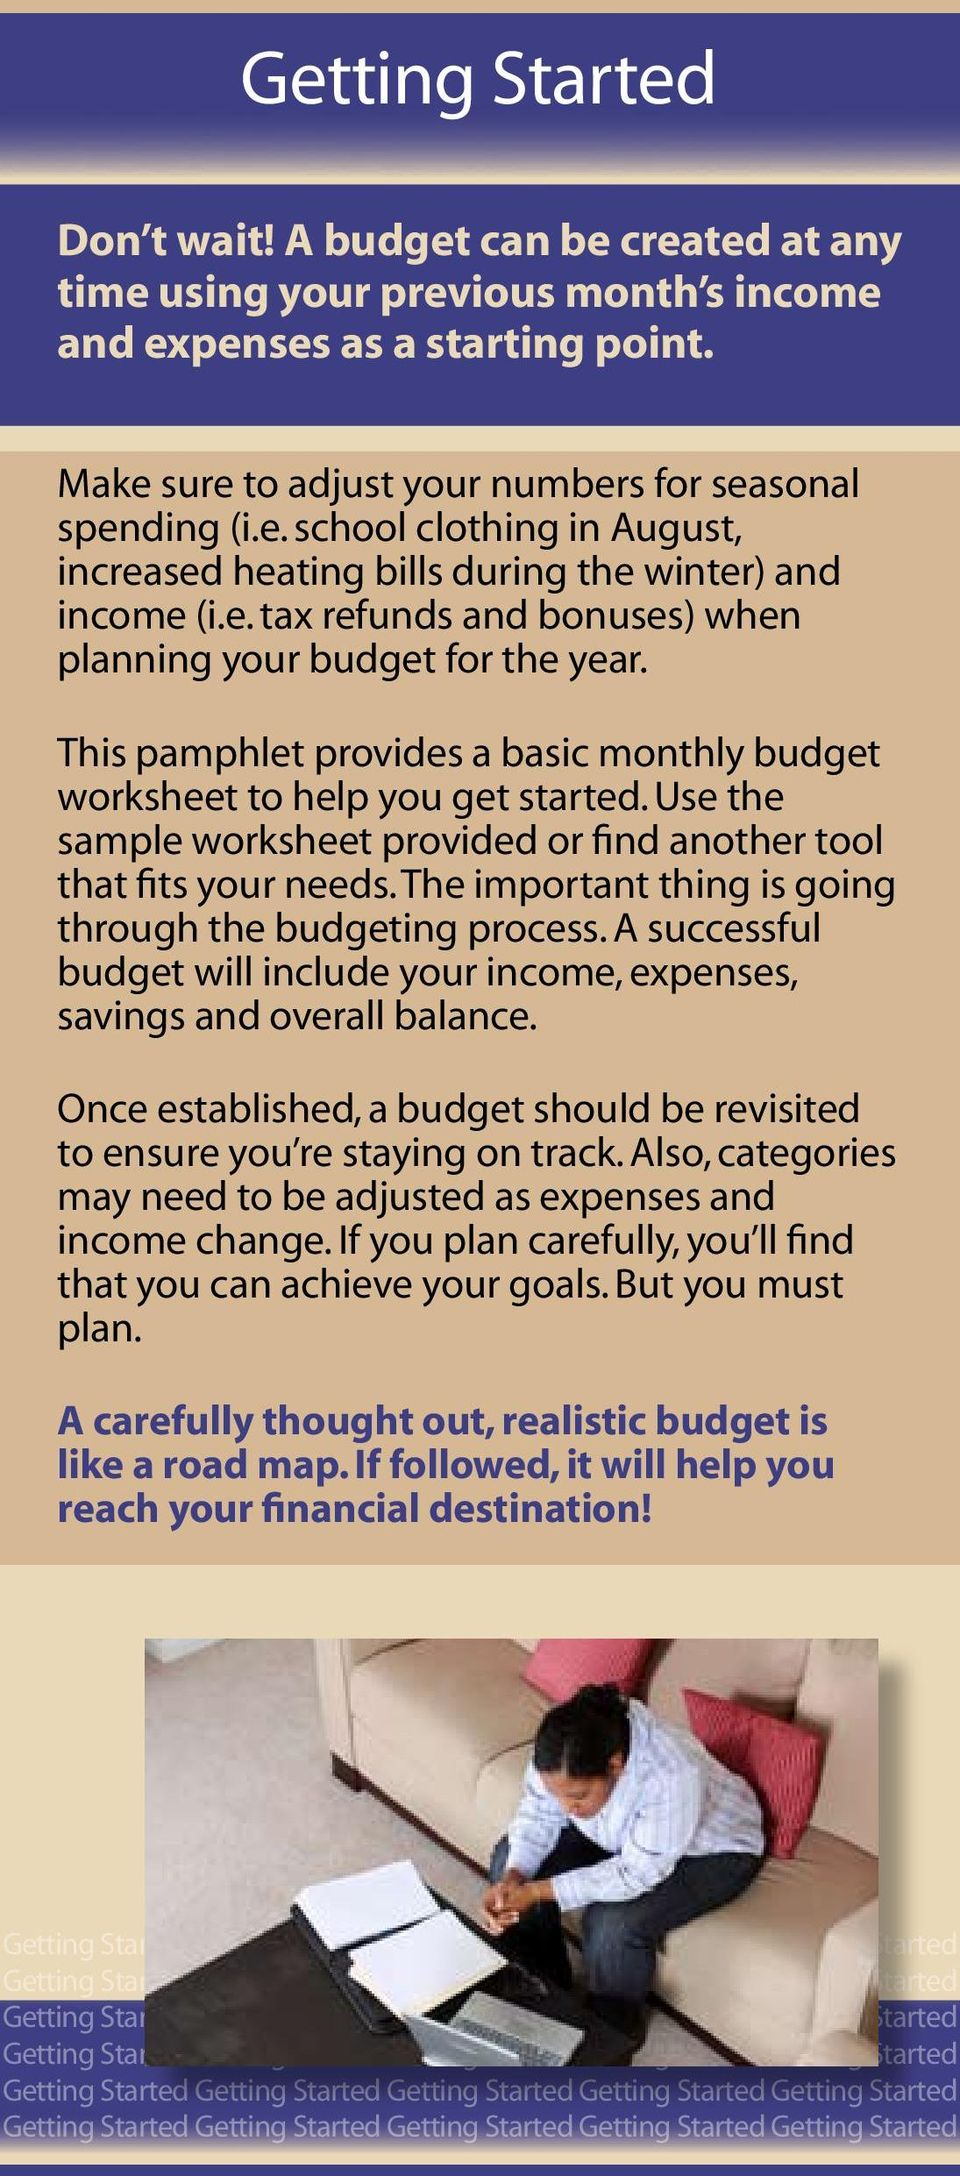 Use the sample worksheet provided or find another tool that fits your needs. The important thing is going through the budgeting process.